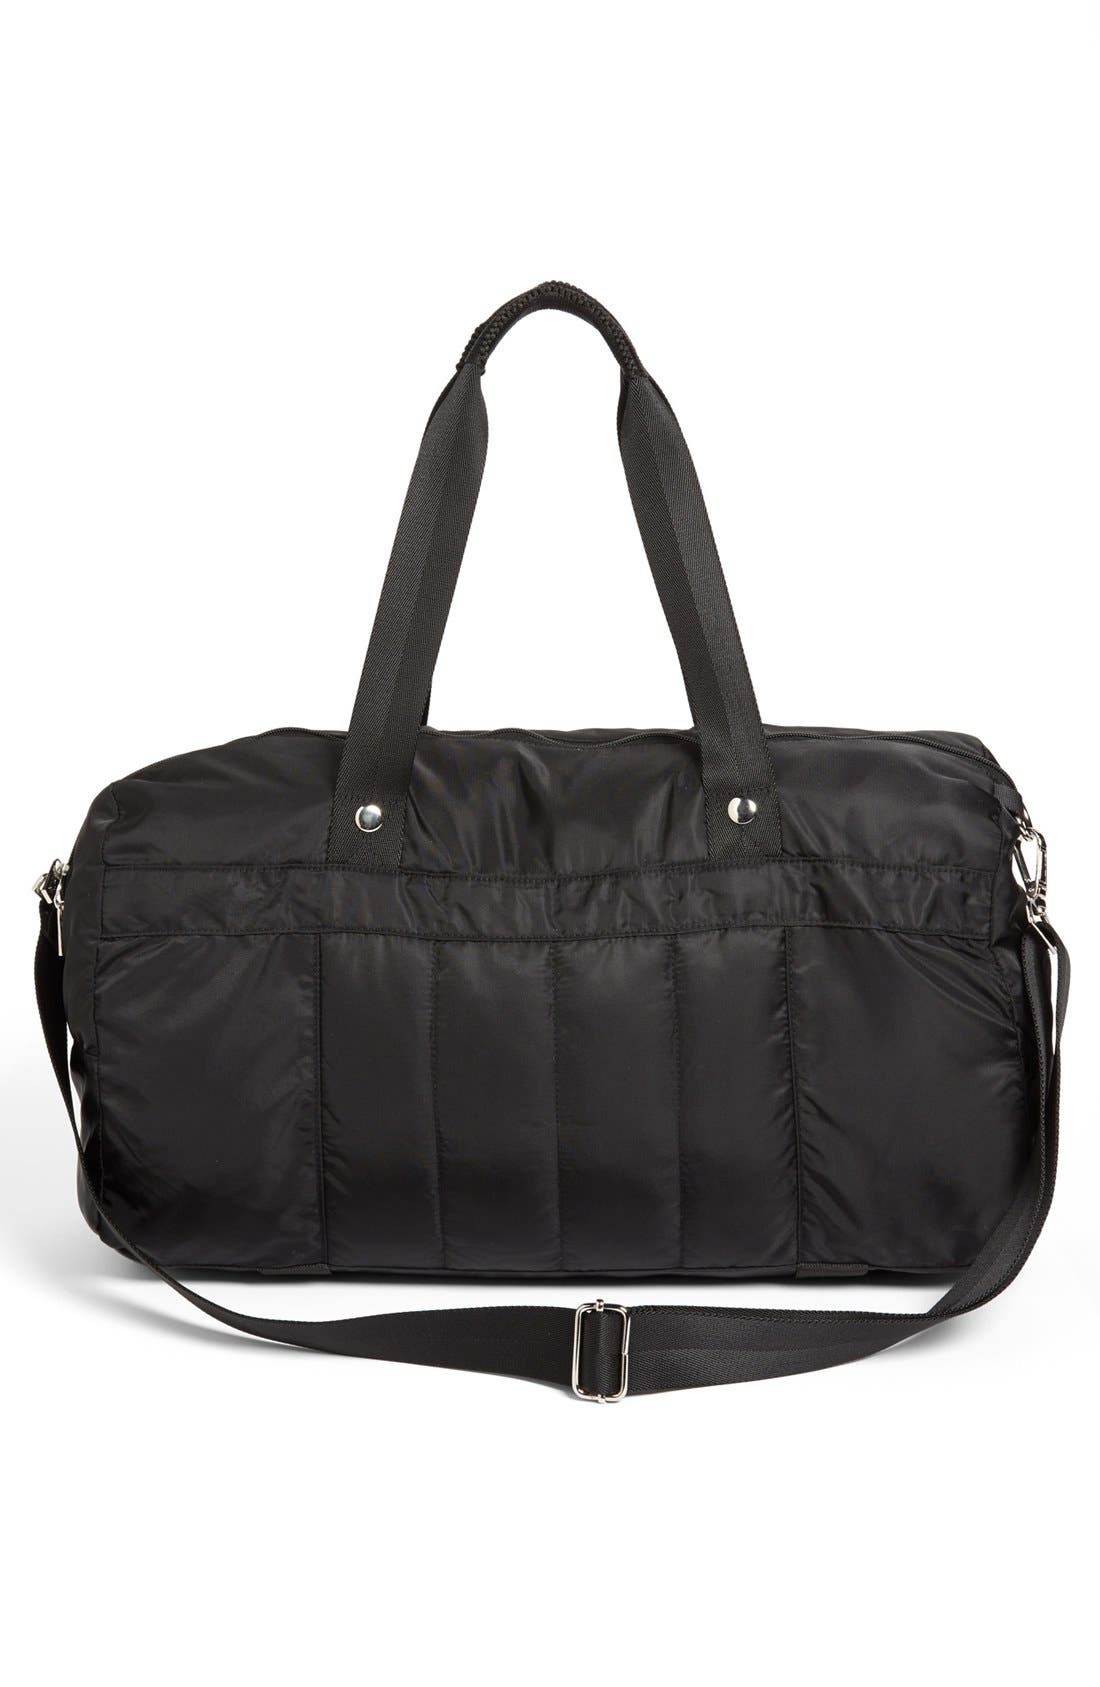 Quilted Gear Duffel Bag,                             Alternate thumbnail 3, color,                             001